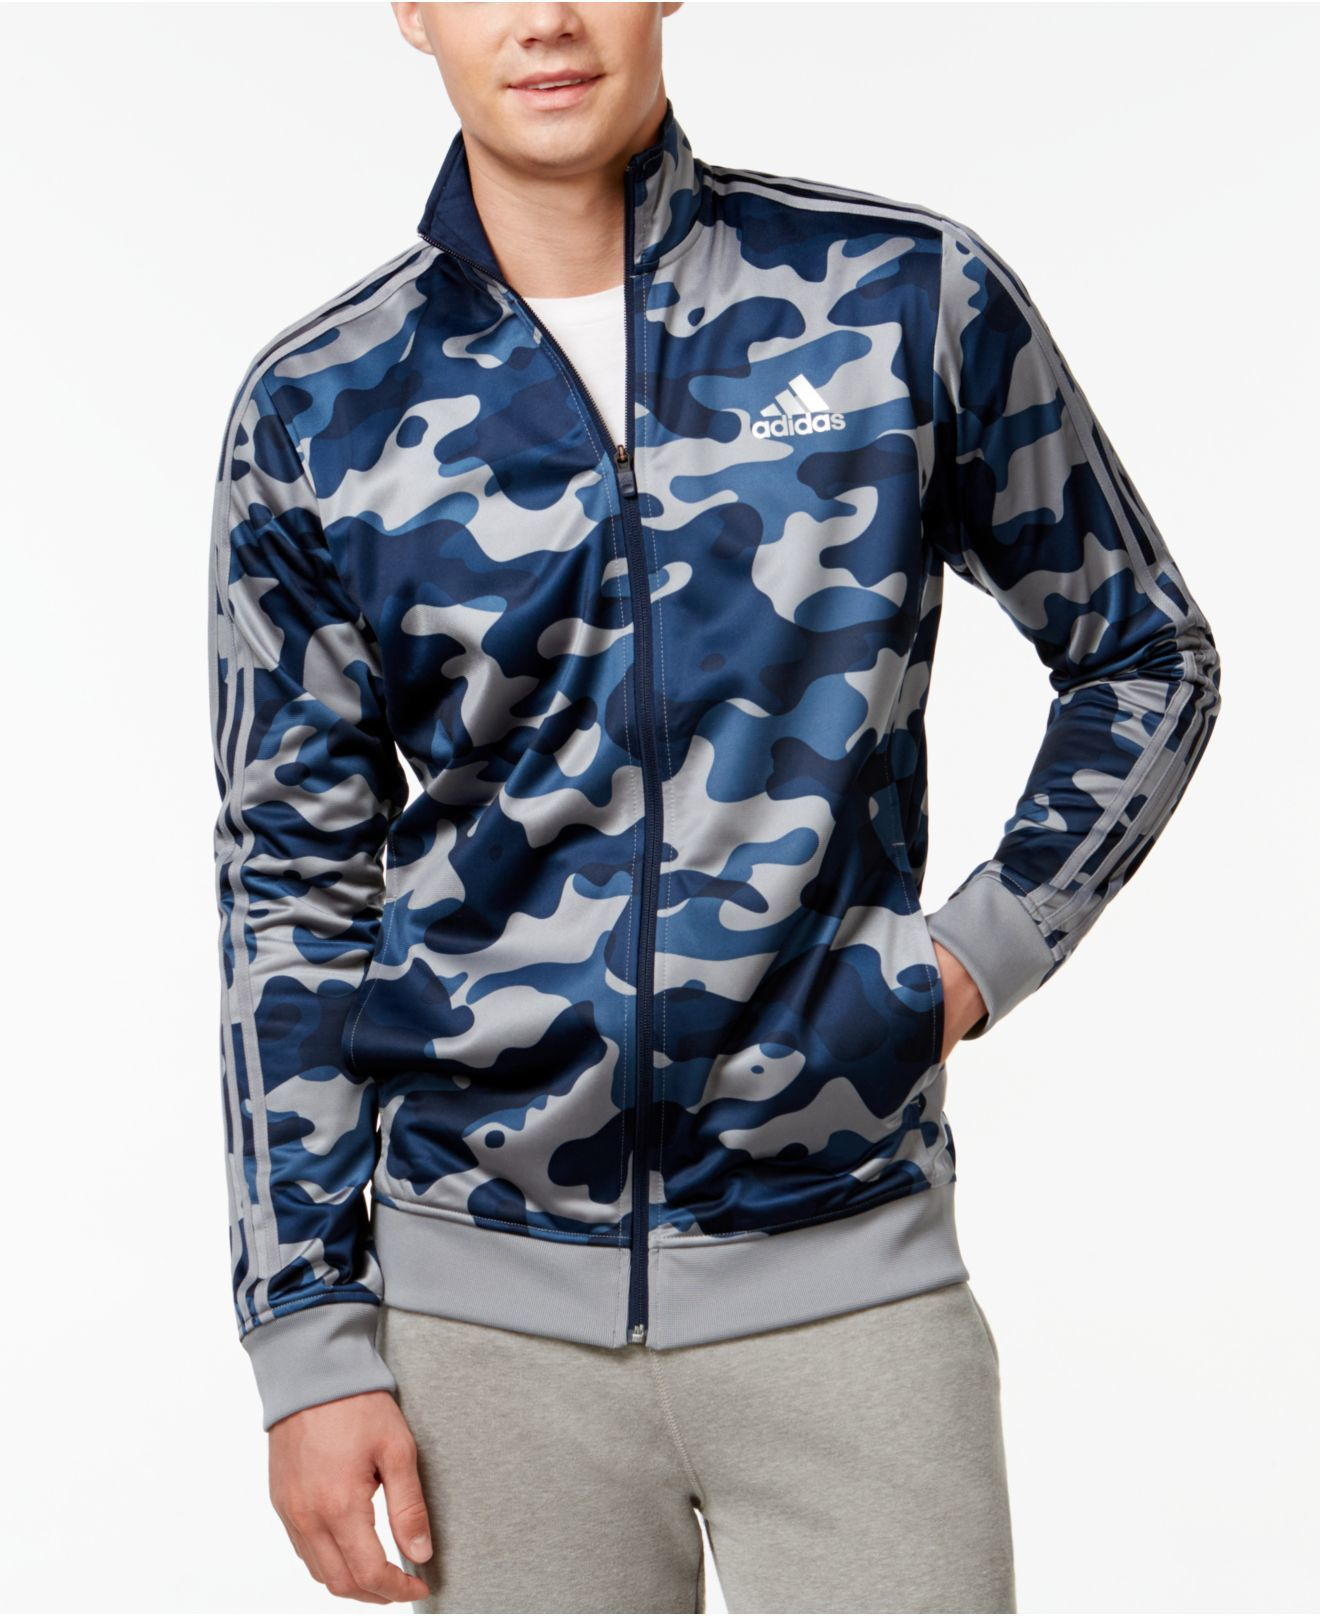 792f7a6832ee Adidas Men s Camo Print Track Jacket in Blue for Men (Navy Grey ...